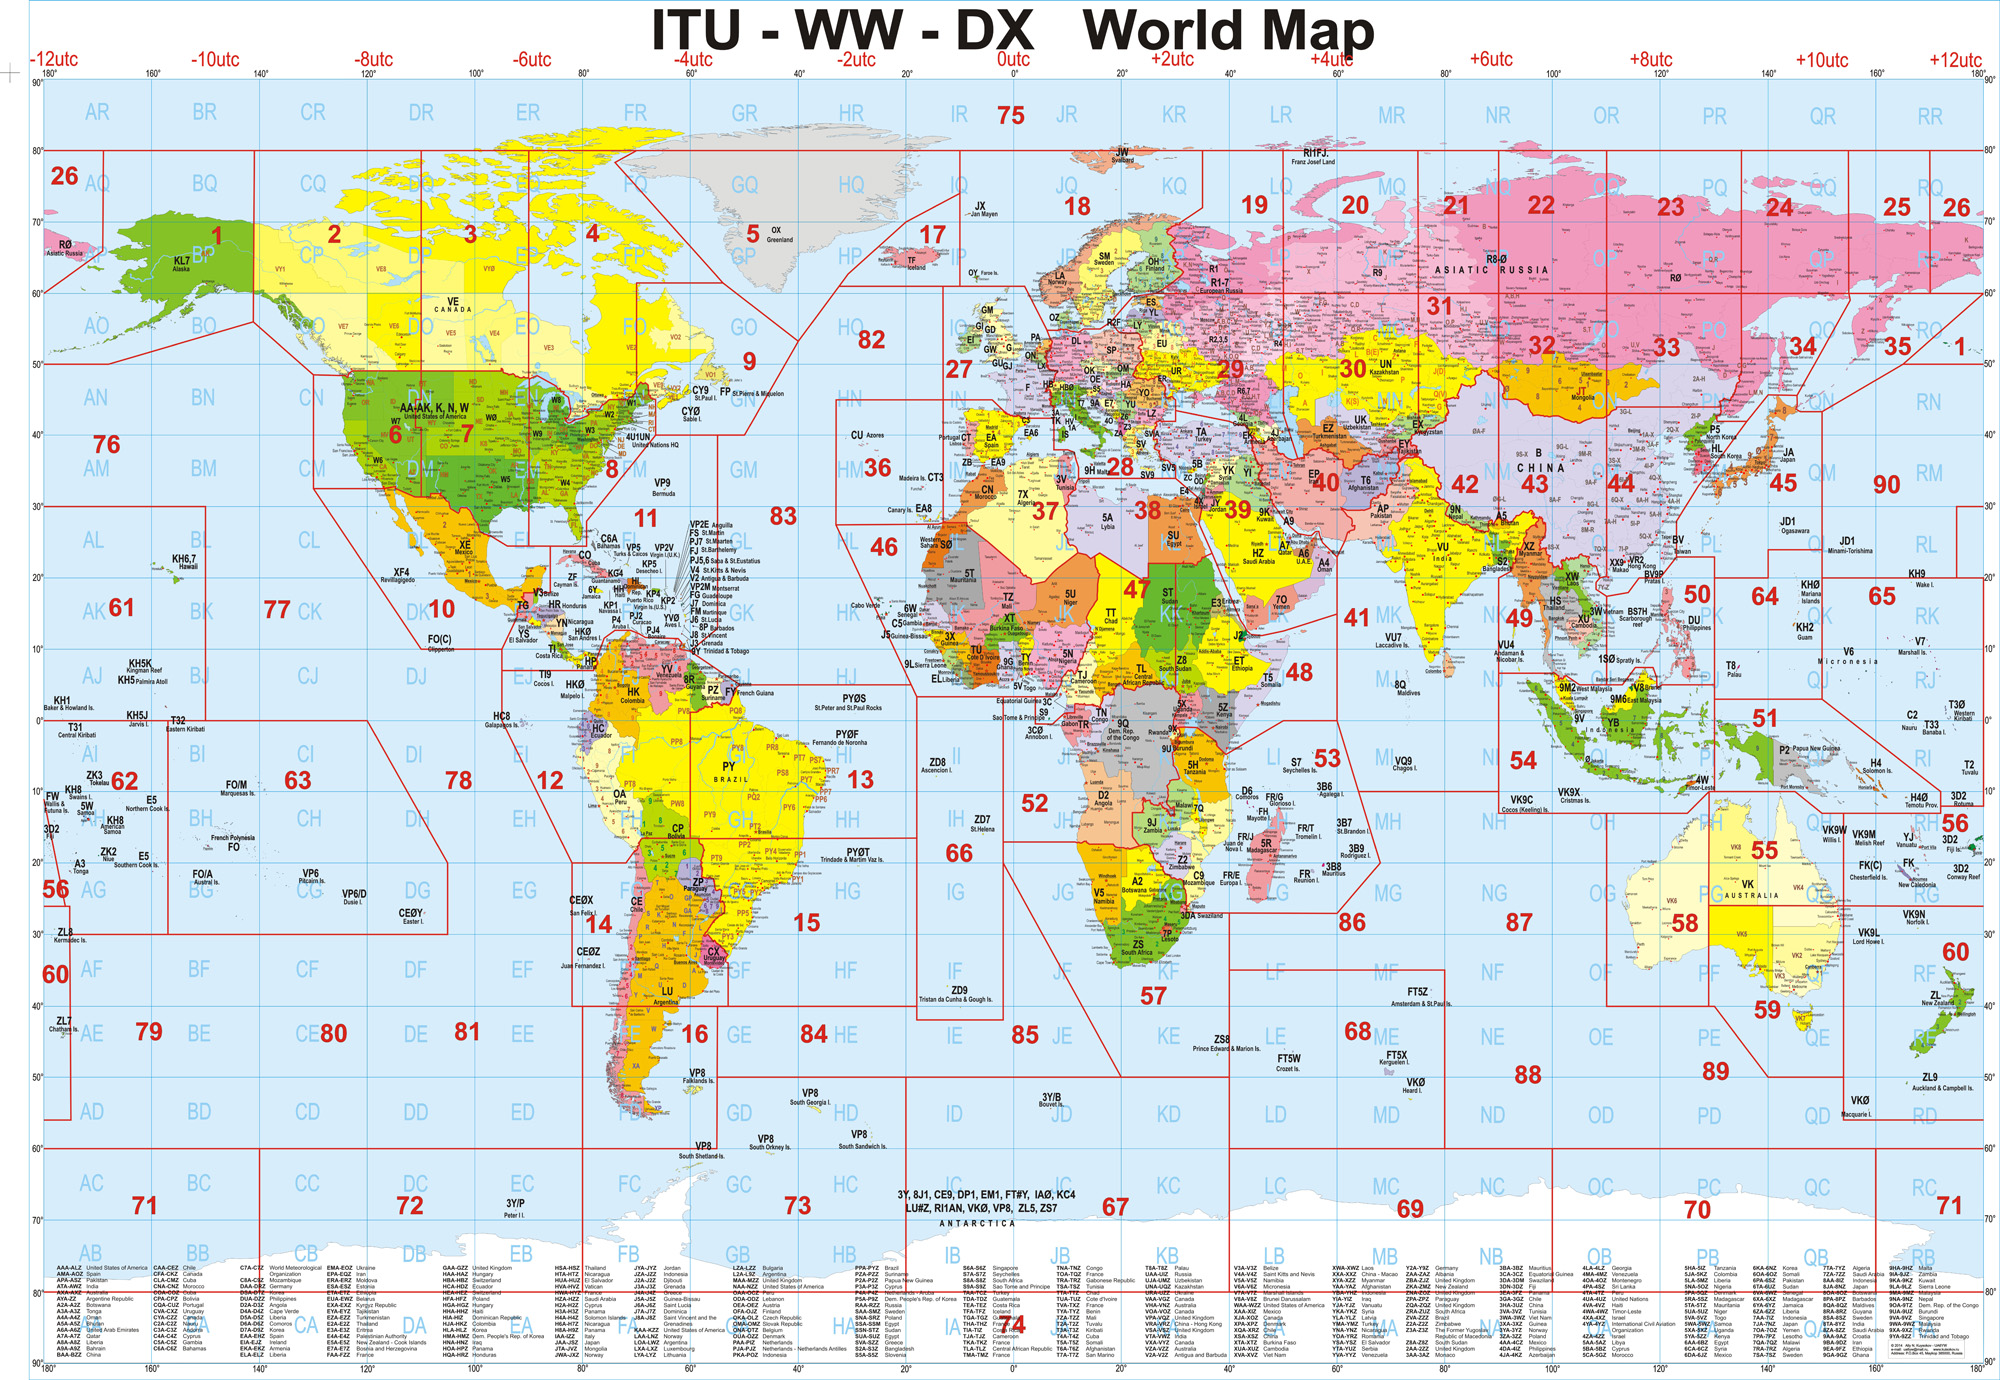 CQ Zones WW Locators DX Countries World Map With ITU - List of world countries and capitals